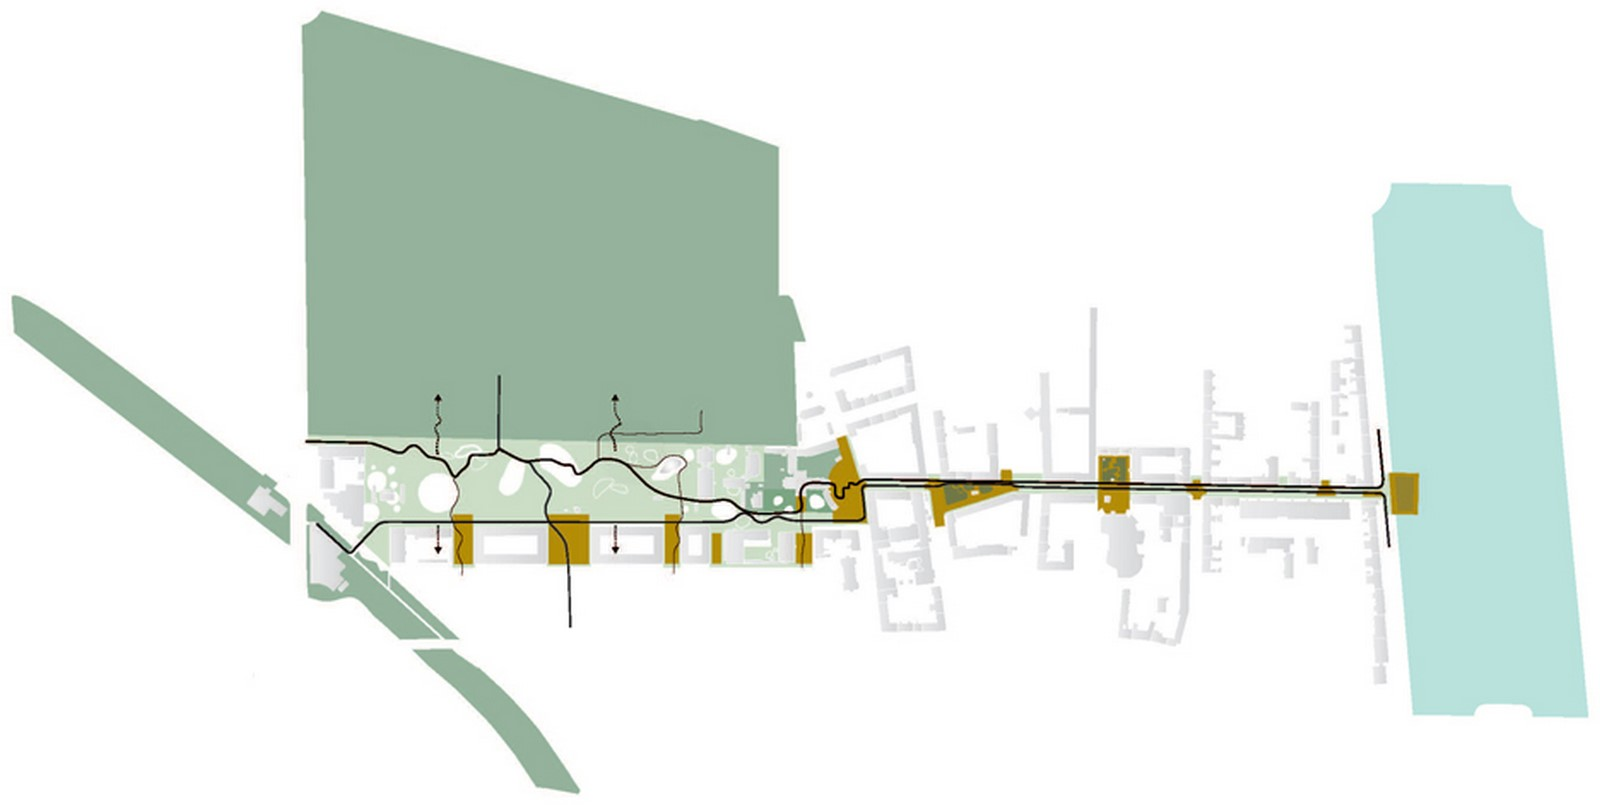 Flood Architecture: The Way Ahead - Sheet11